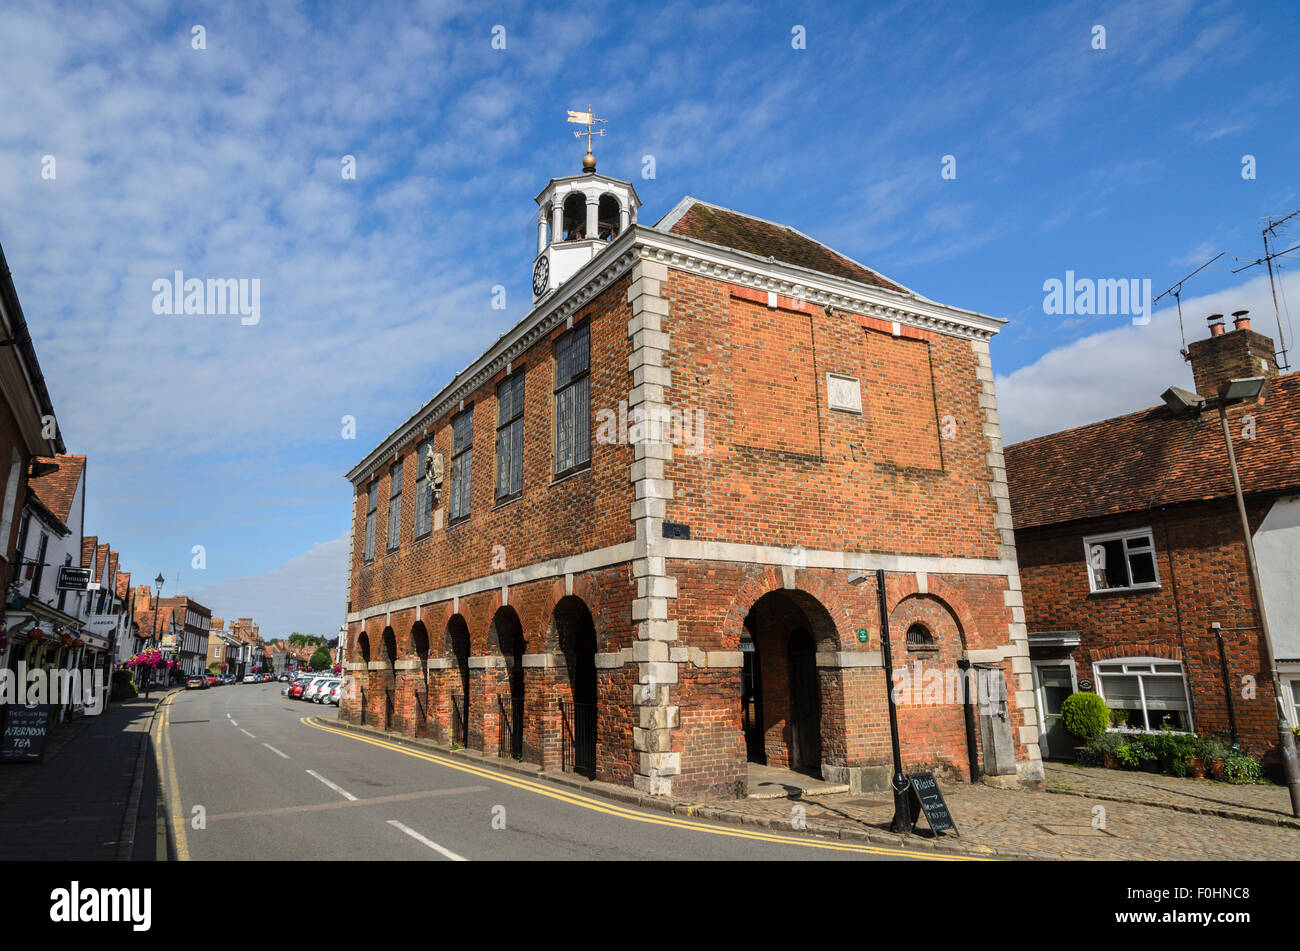 The Market Hall, Old Amersham, Buckinghamshire, England UK. - Stock Image